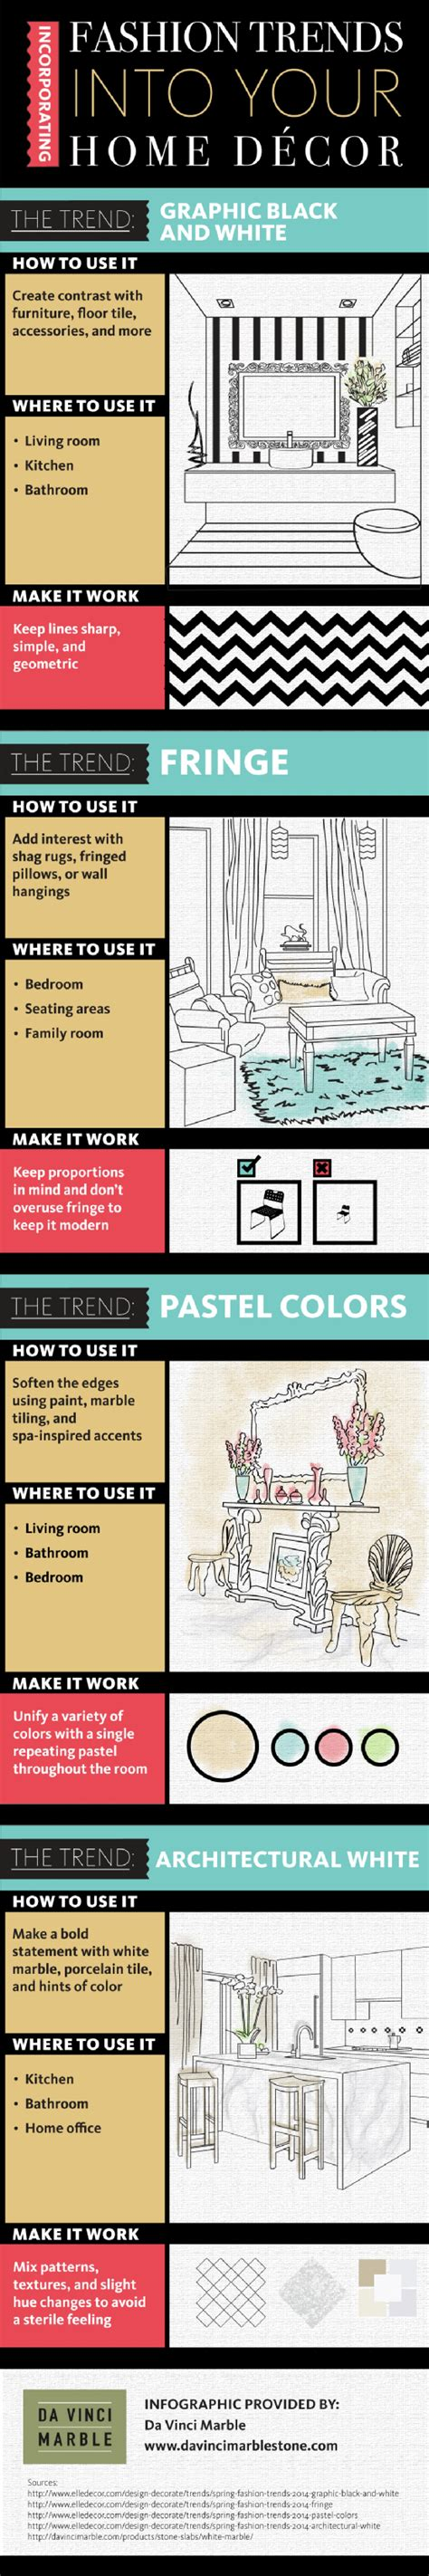 home decor infographic incorporating fashion trends into your home d 233 cor visual ly